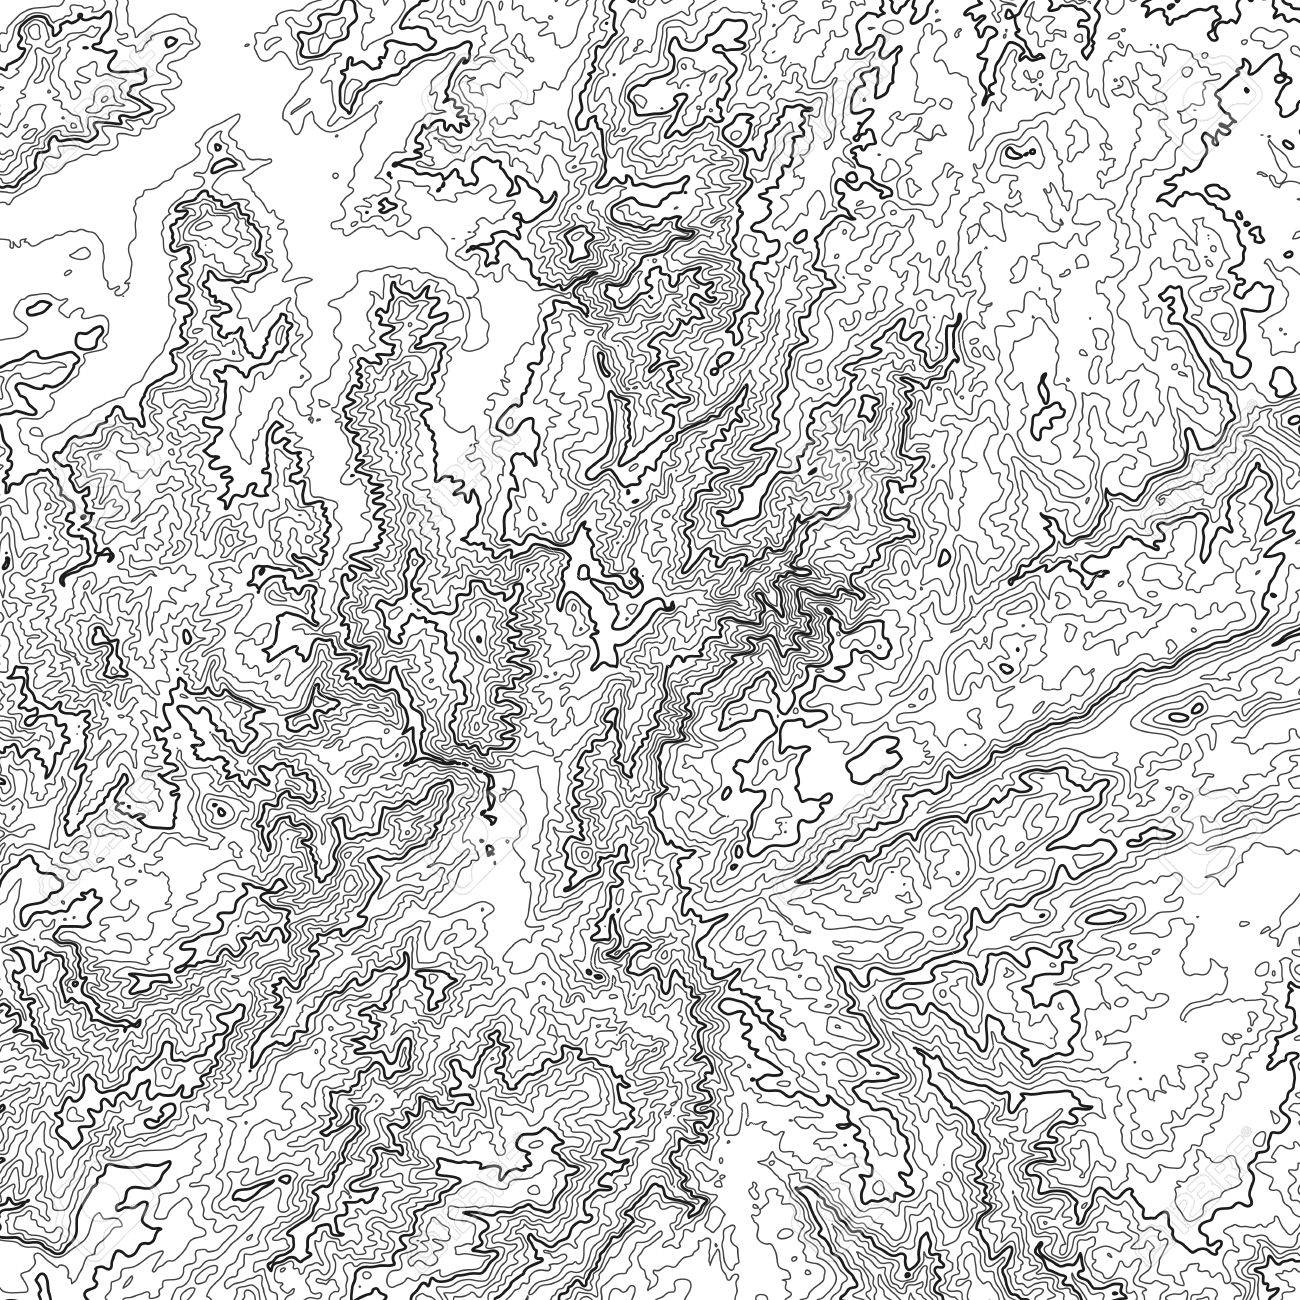 Vector abstract grayscale earth relief map  Generated conceptual